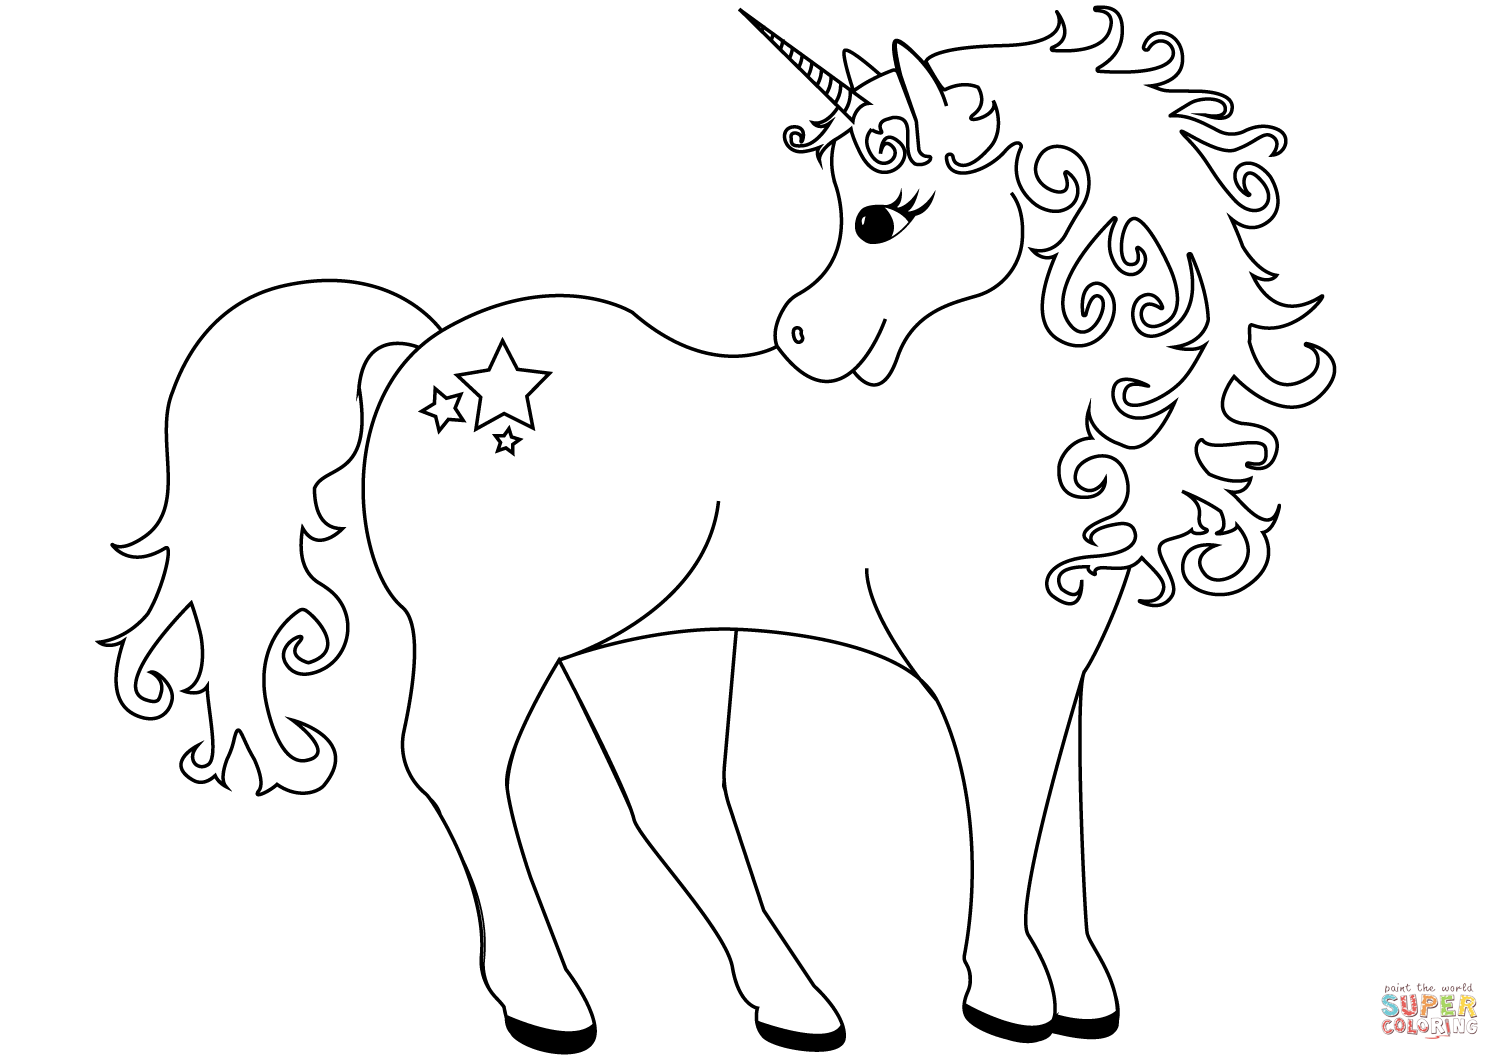 Lovely Unicorn Coloring Page From Unicorn Category Select From